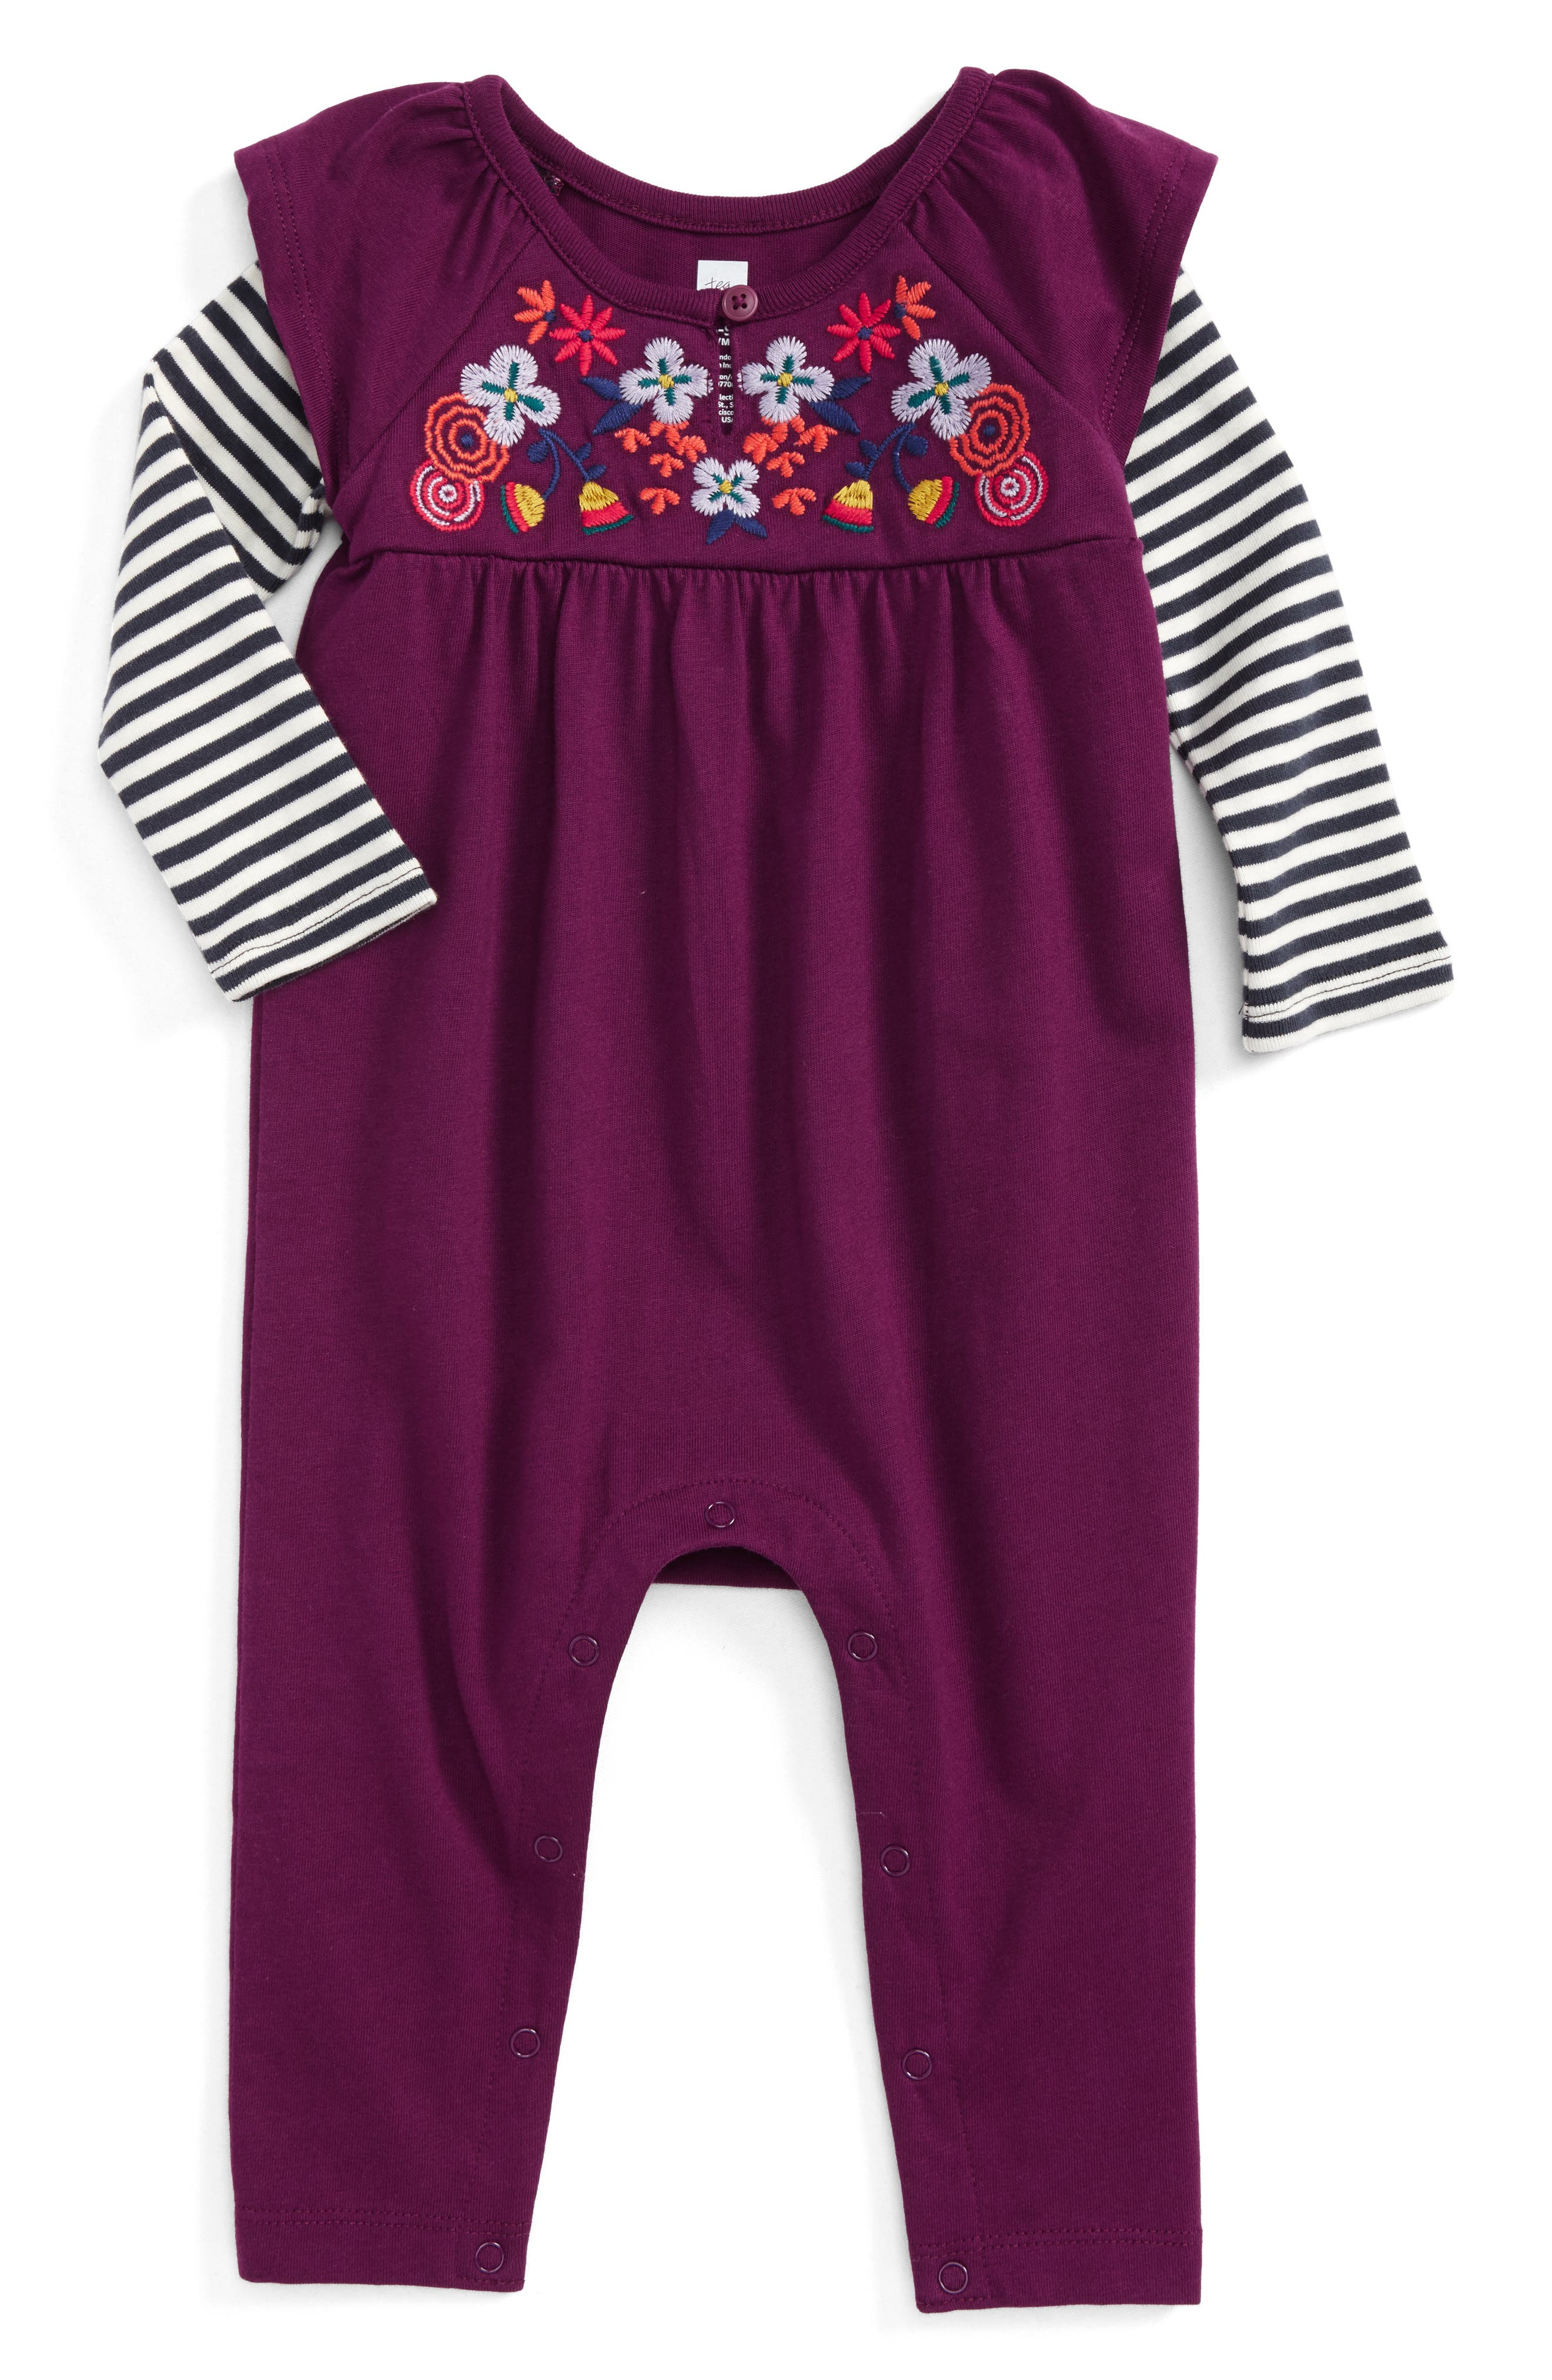 Main Image - Tea Collection Willow Embroidered Romper (Baby Girls)